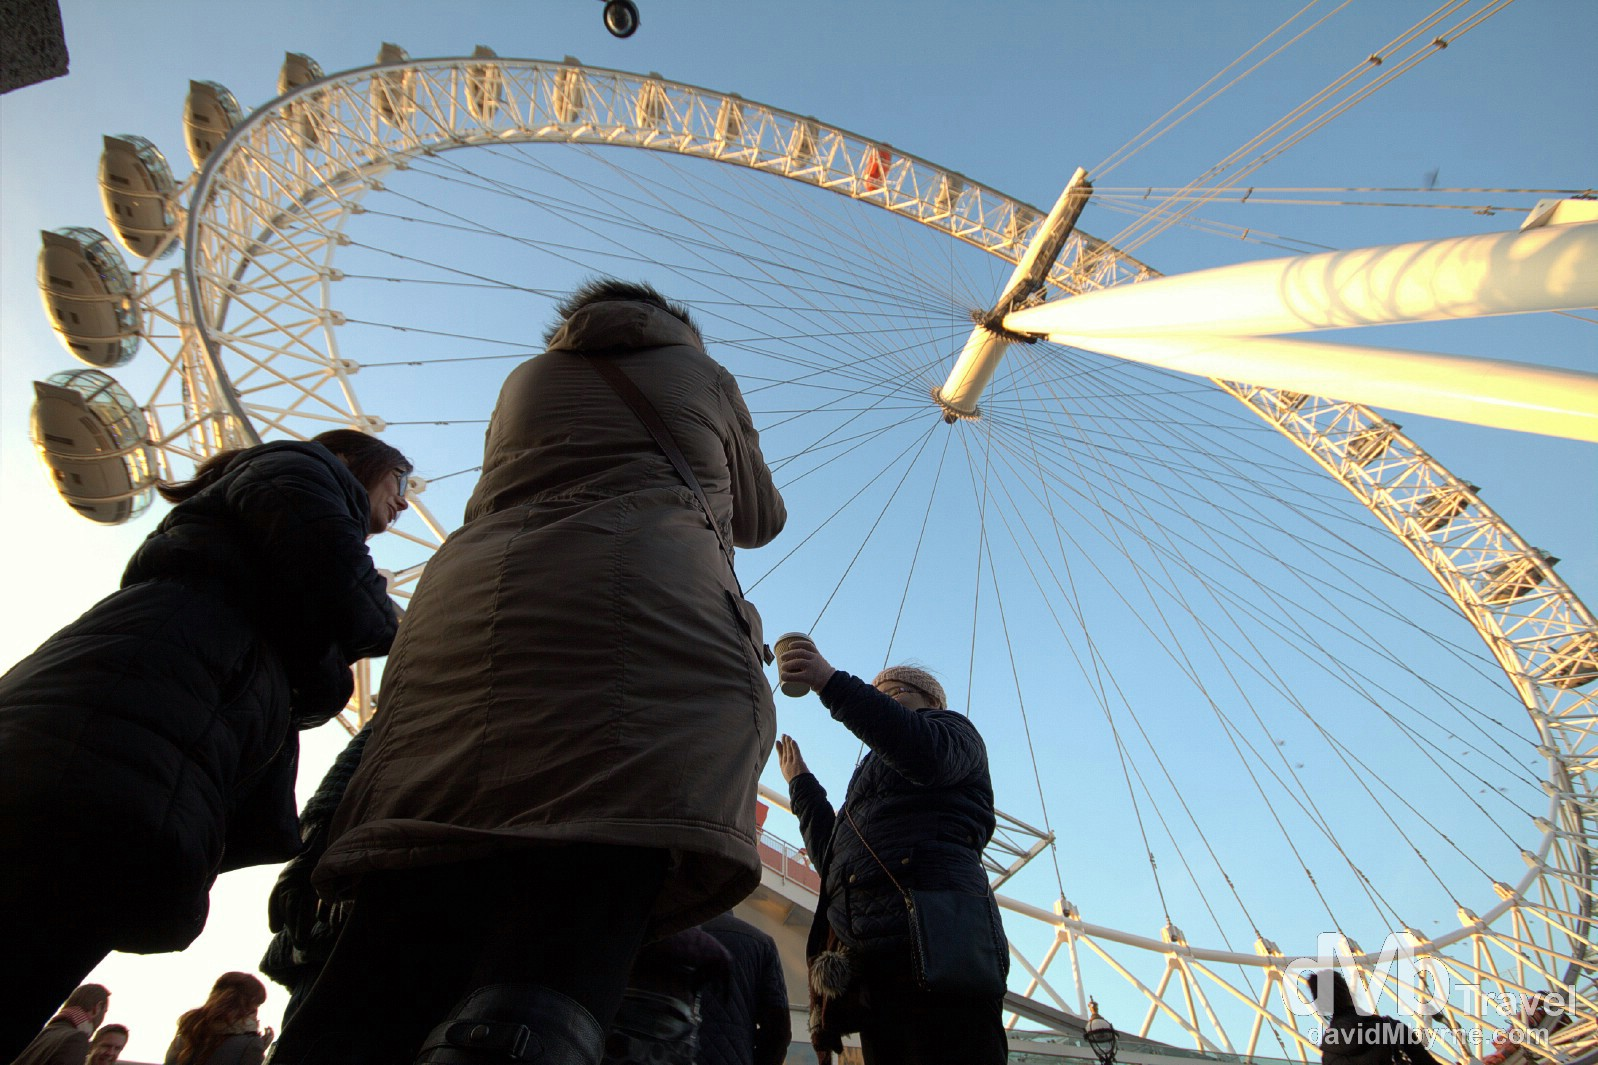 Standing under the London Eye Ferris wheel on the banks of the Thames River in London, England. December 8th 2012.